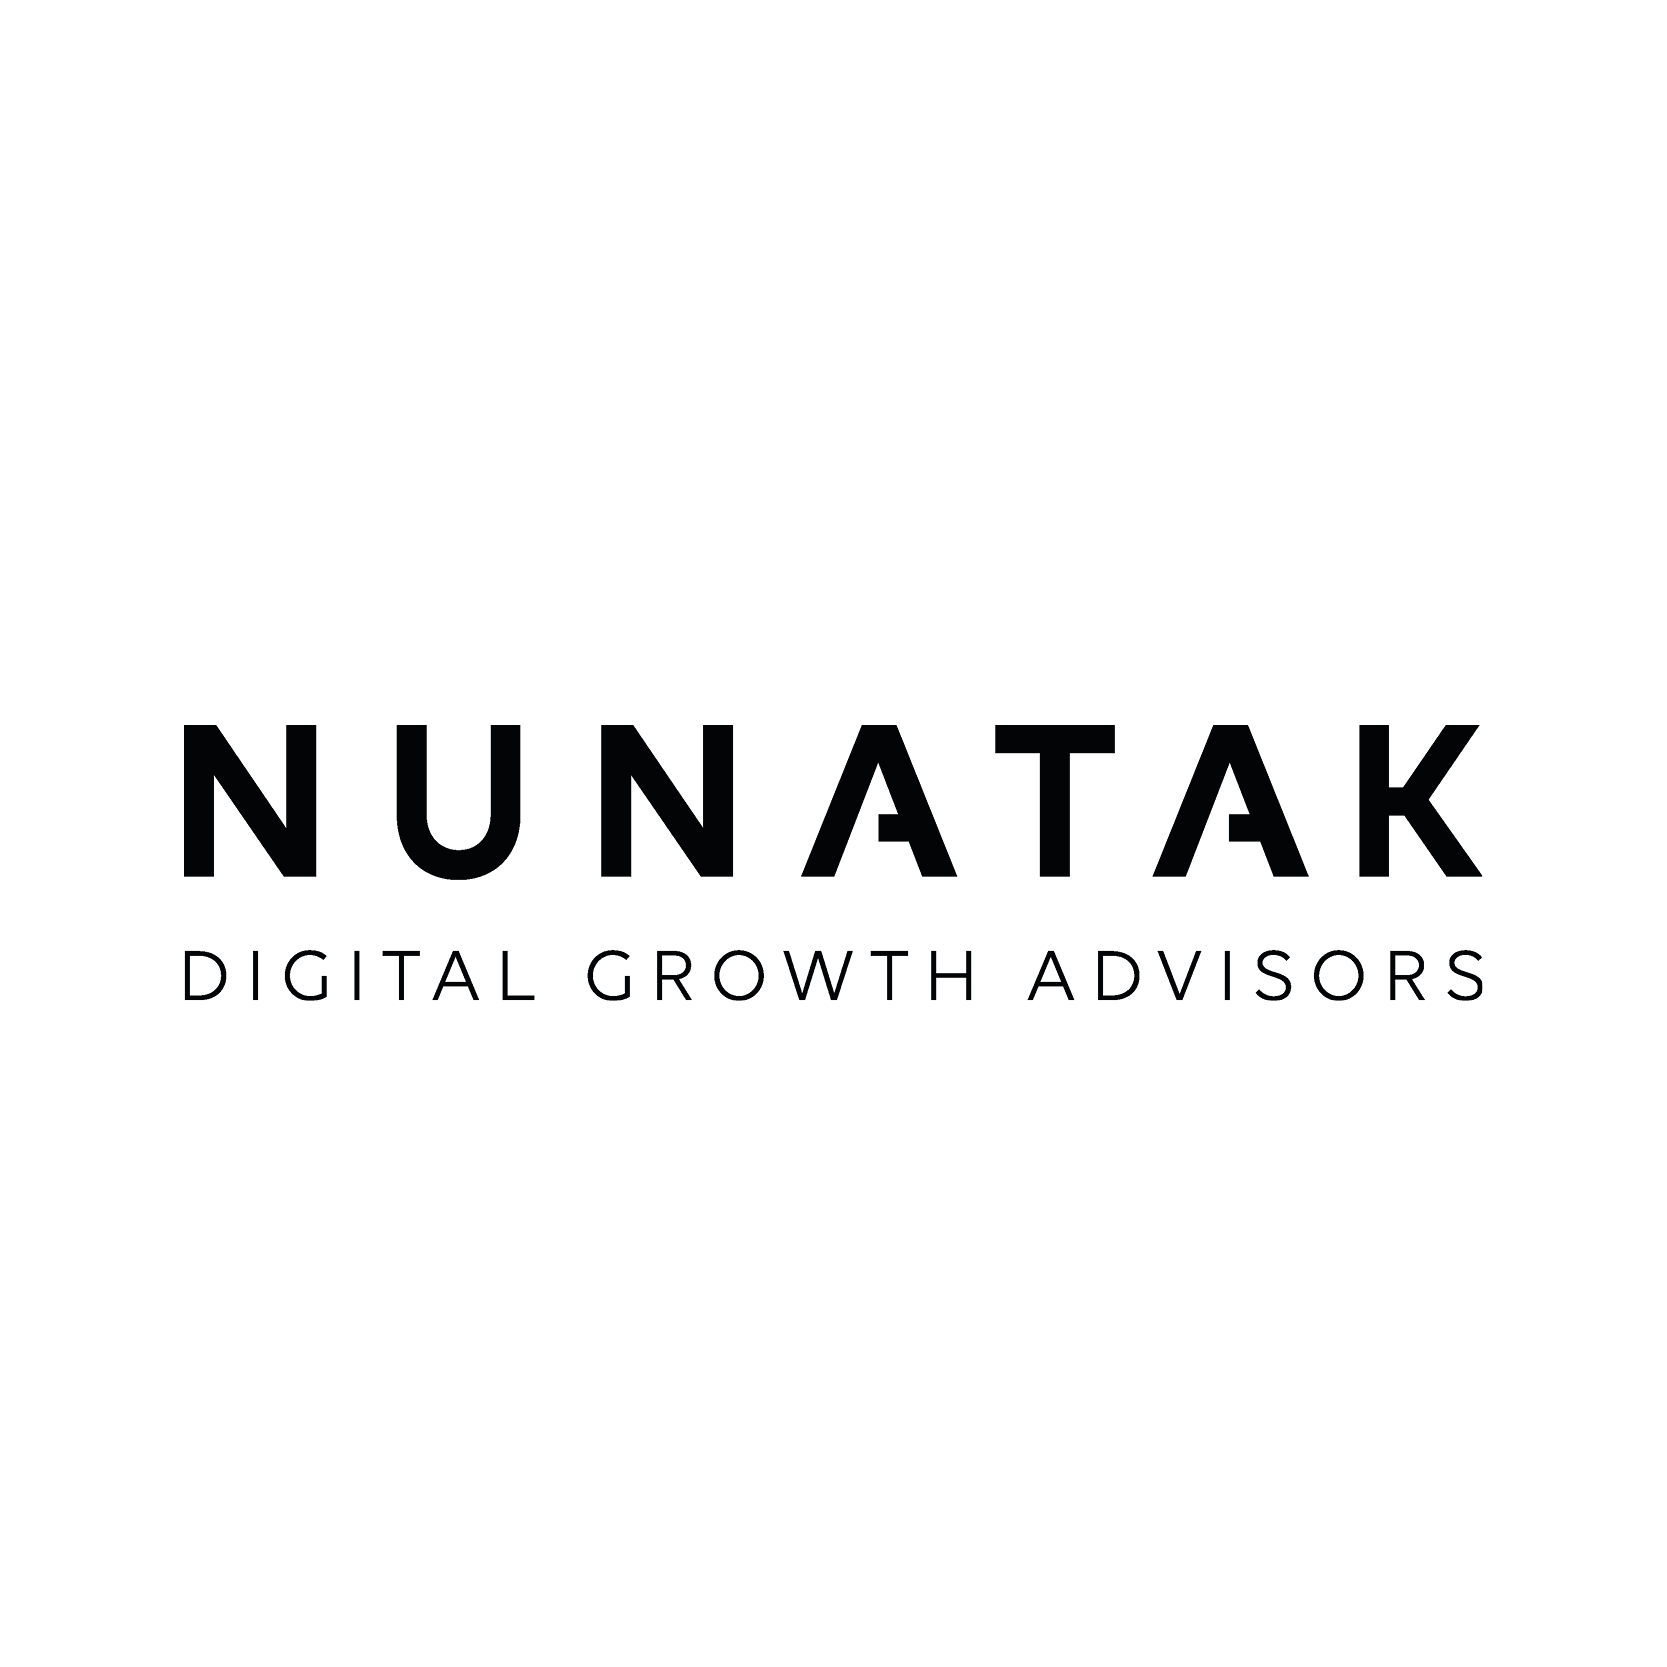 Kunden – The Nunatak Group ENG